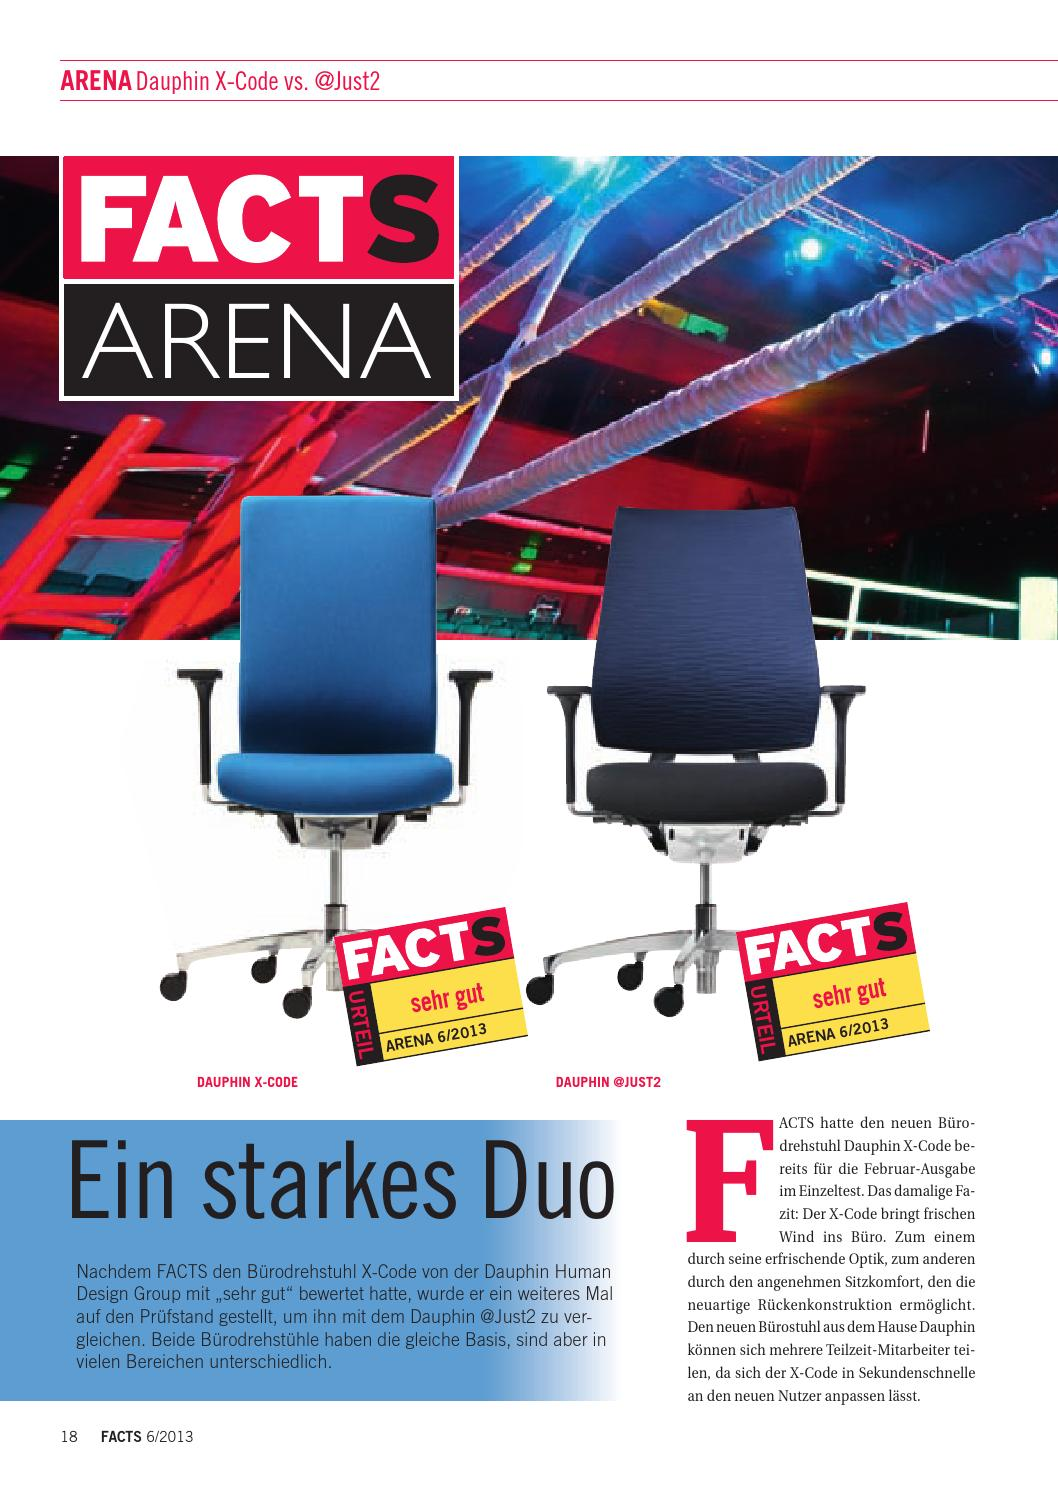 018 021 Fac 0613 Are Dauphin Neu Low By Wipper Buerodesign Gmbh Issuu